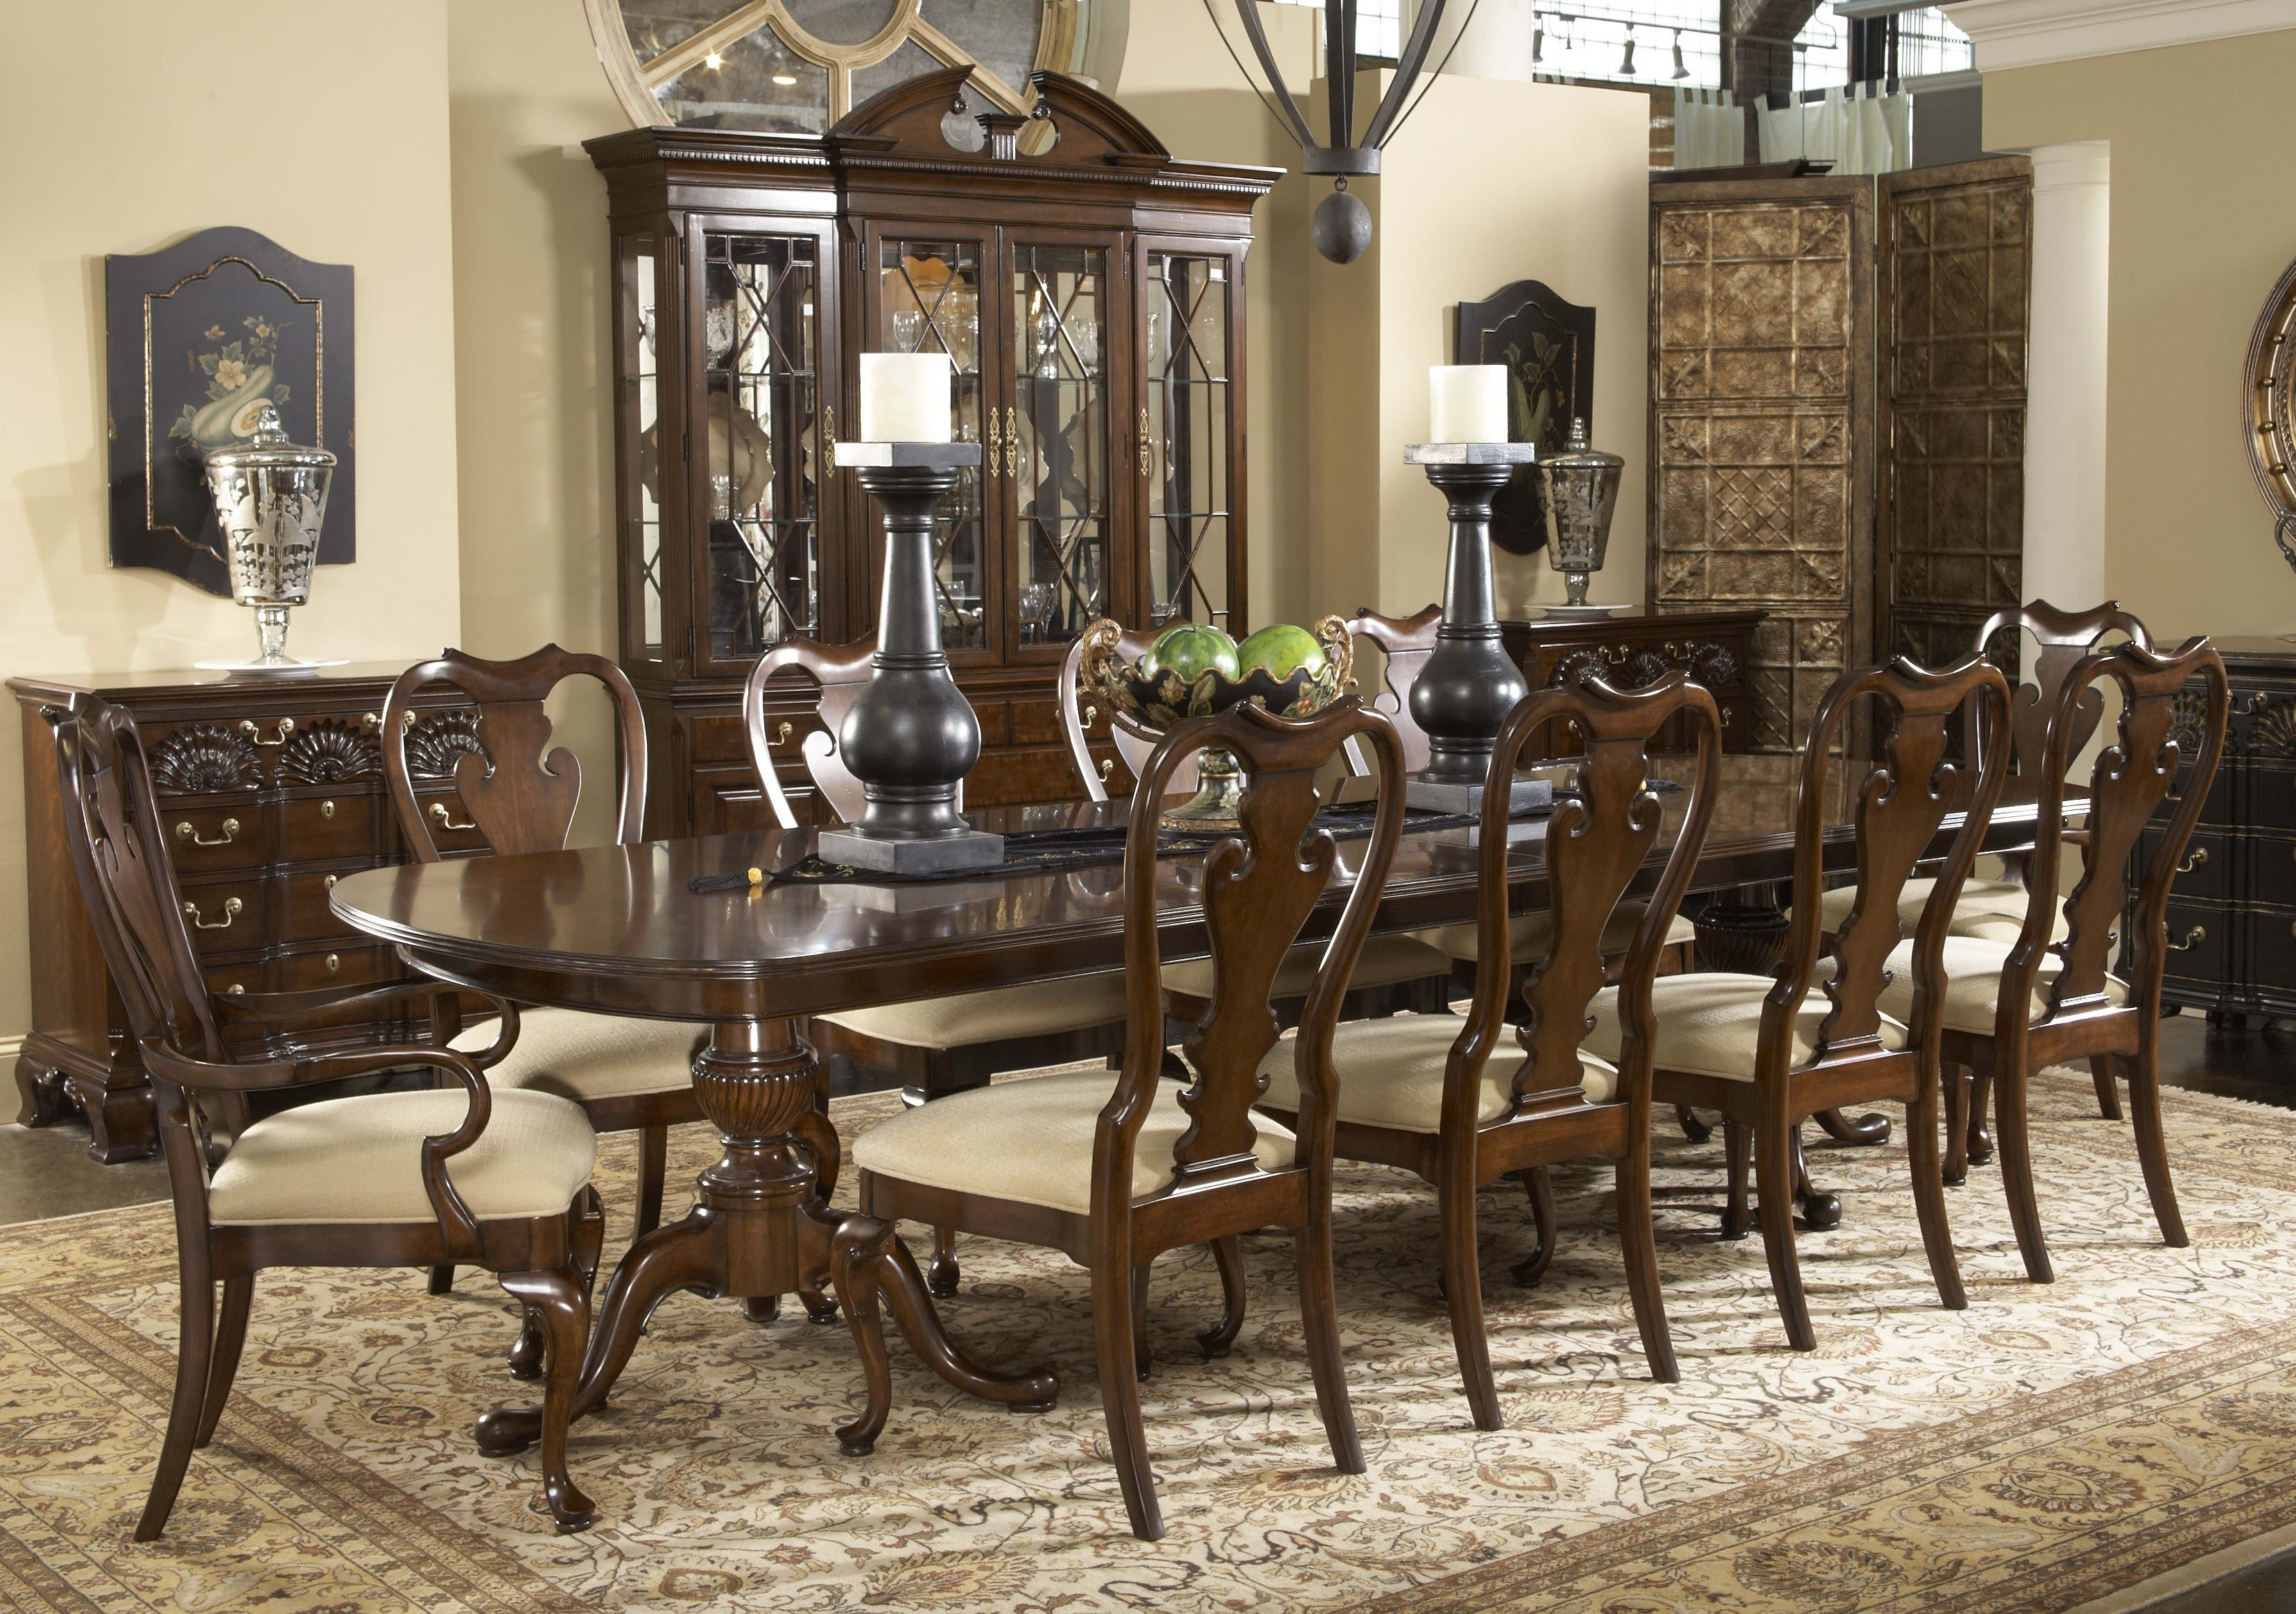 Captivating Formal Dining Room Sets With Buffet And Ceiling Light For